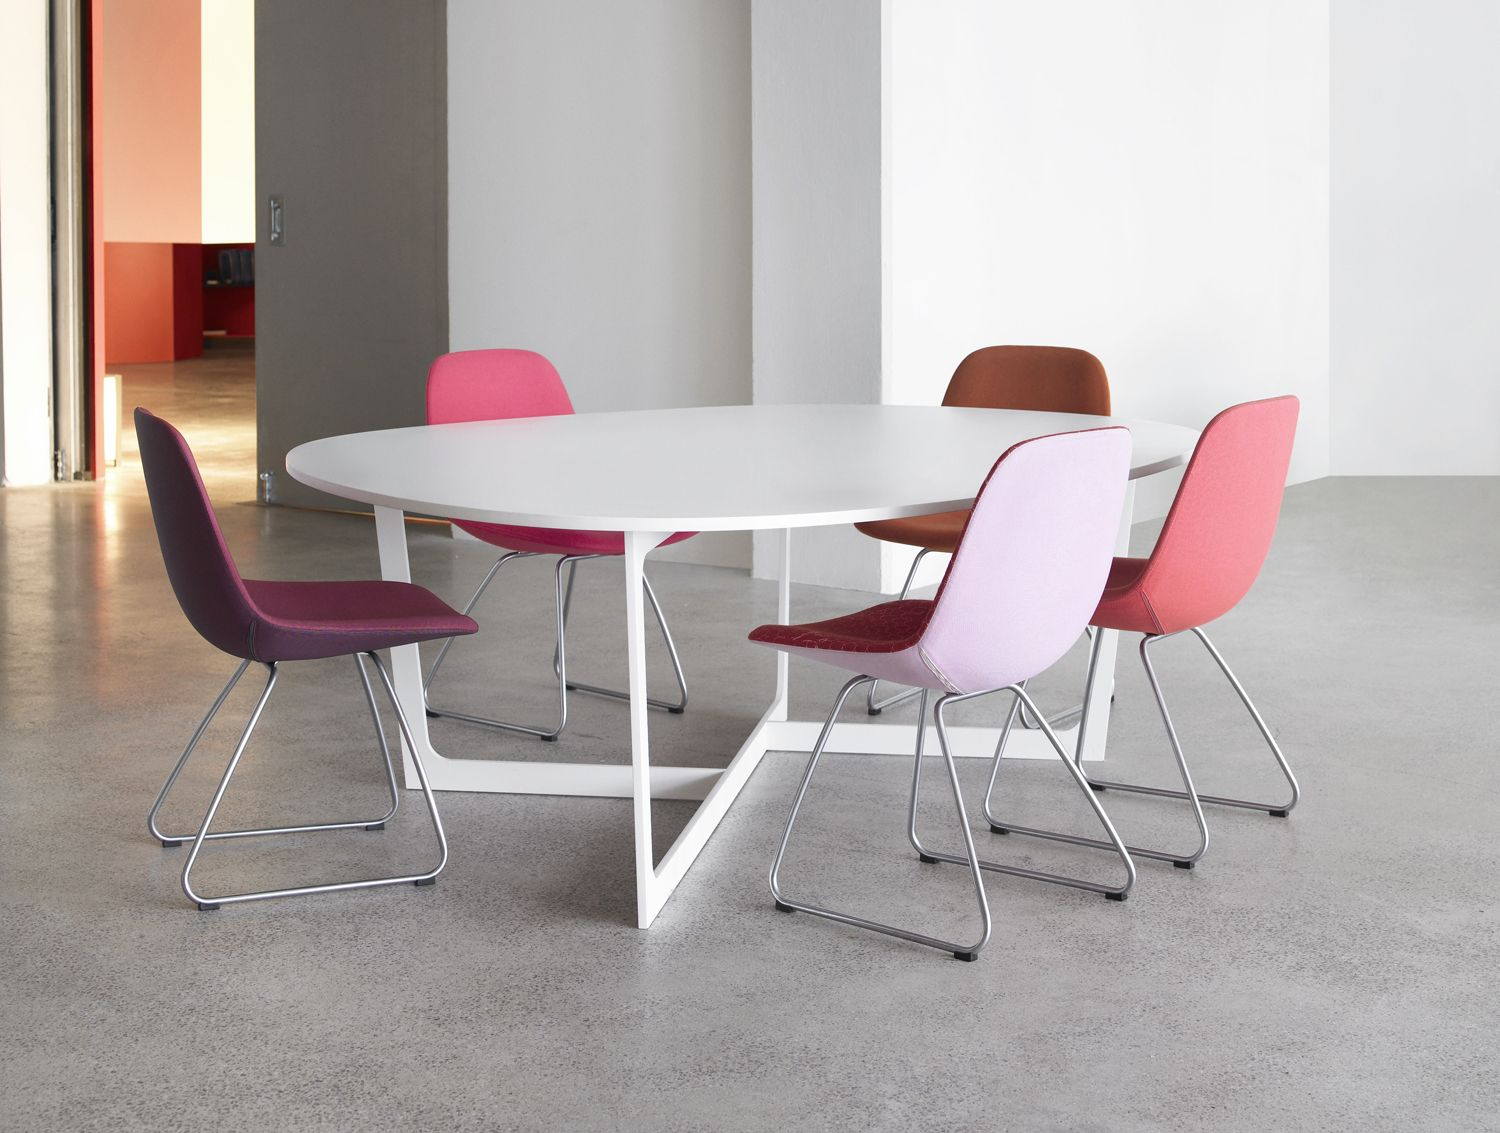 Products Insula Meeting Hightower I Cafeteria Tables Dining Furniture Office Furnishing Table